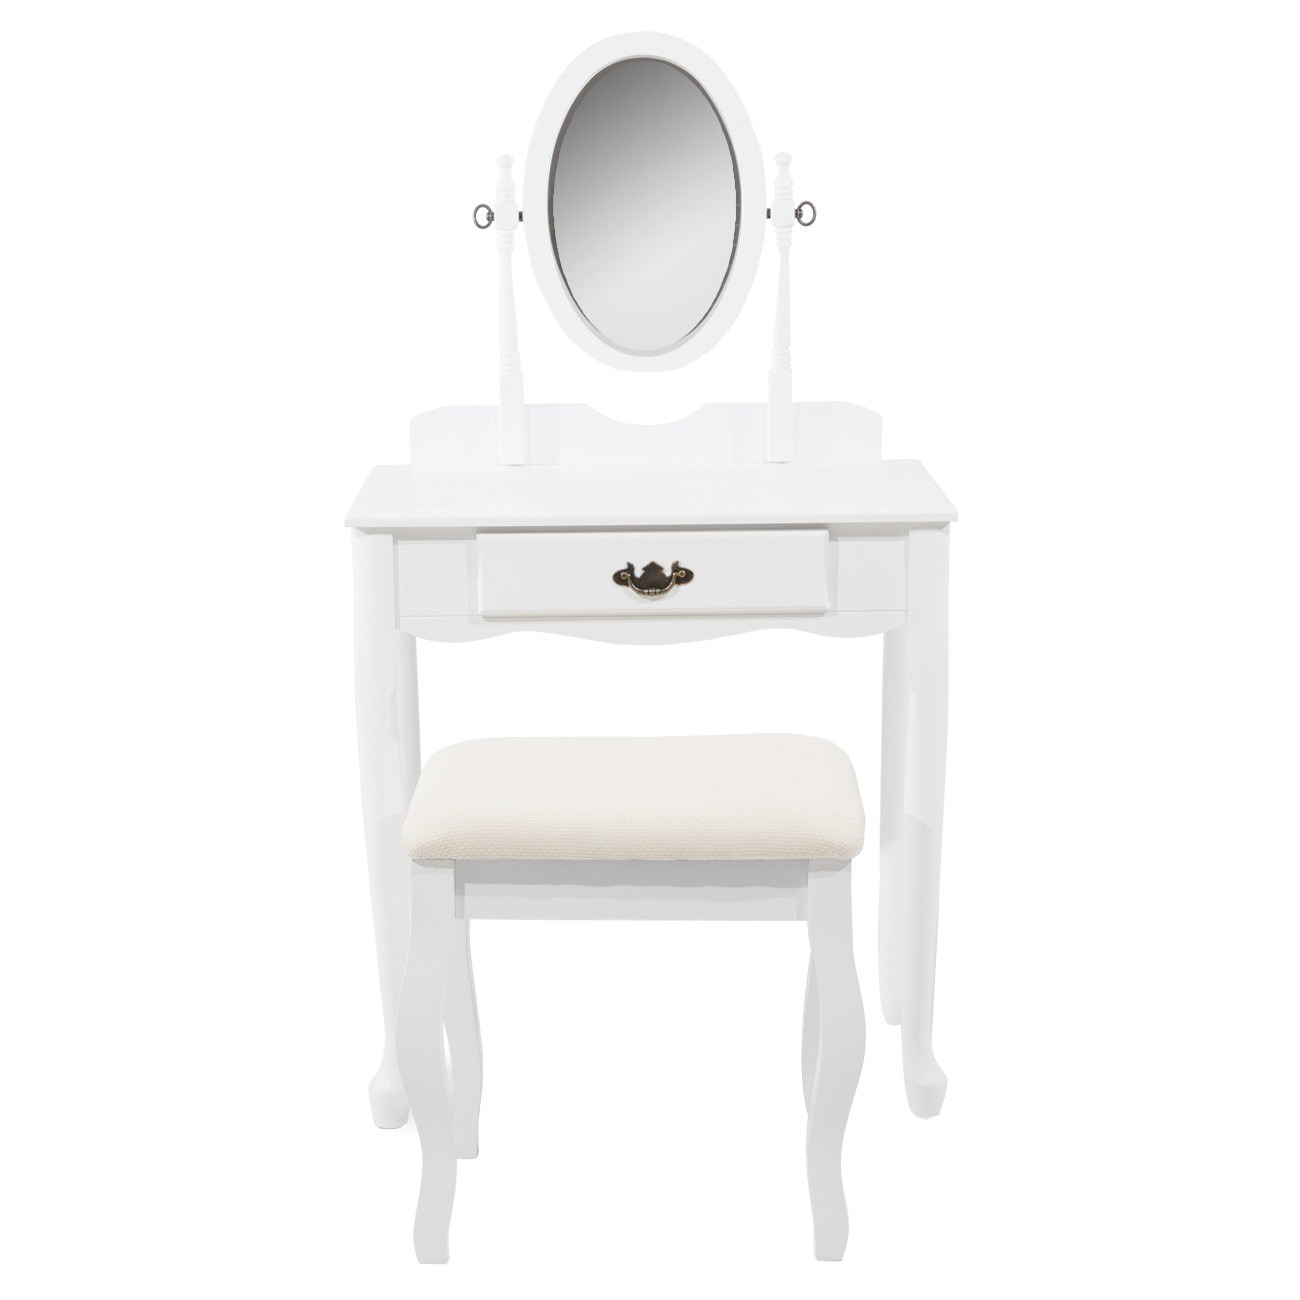 Miley Wooden Dressing Table & Stool Set